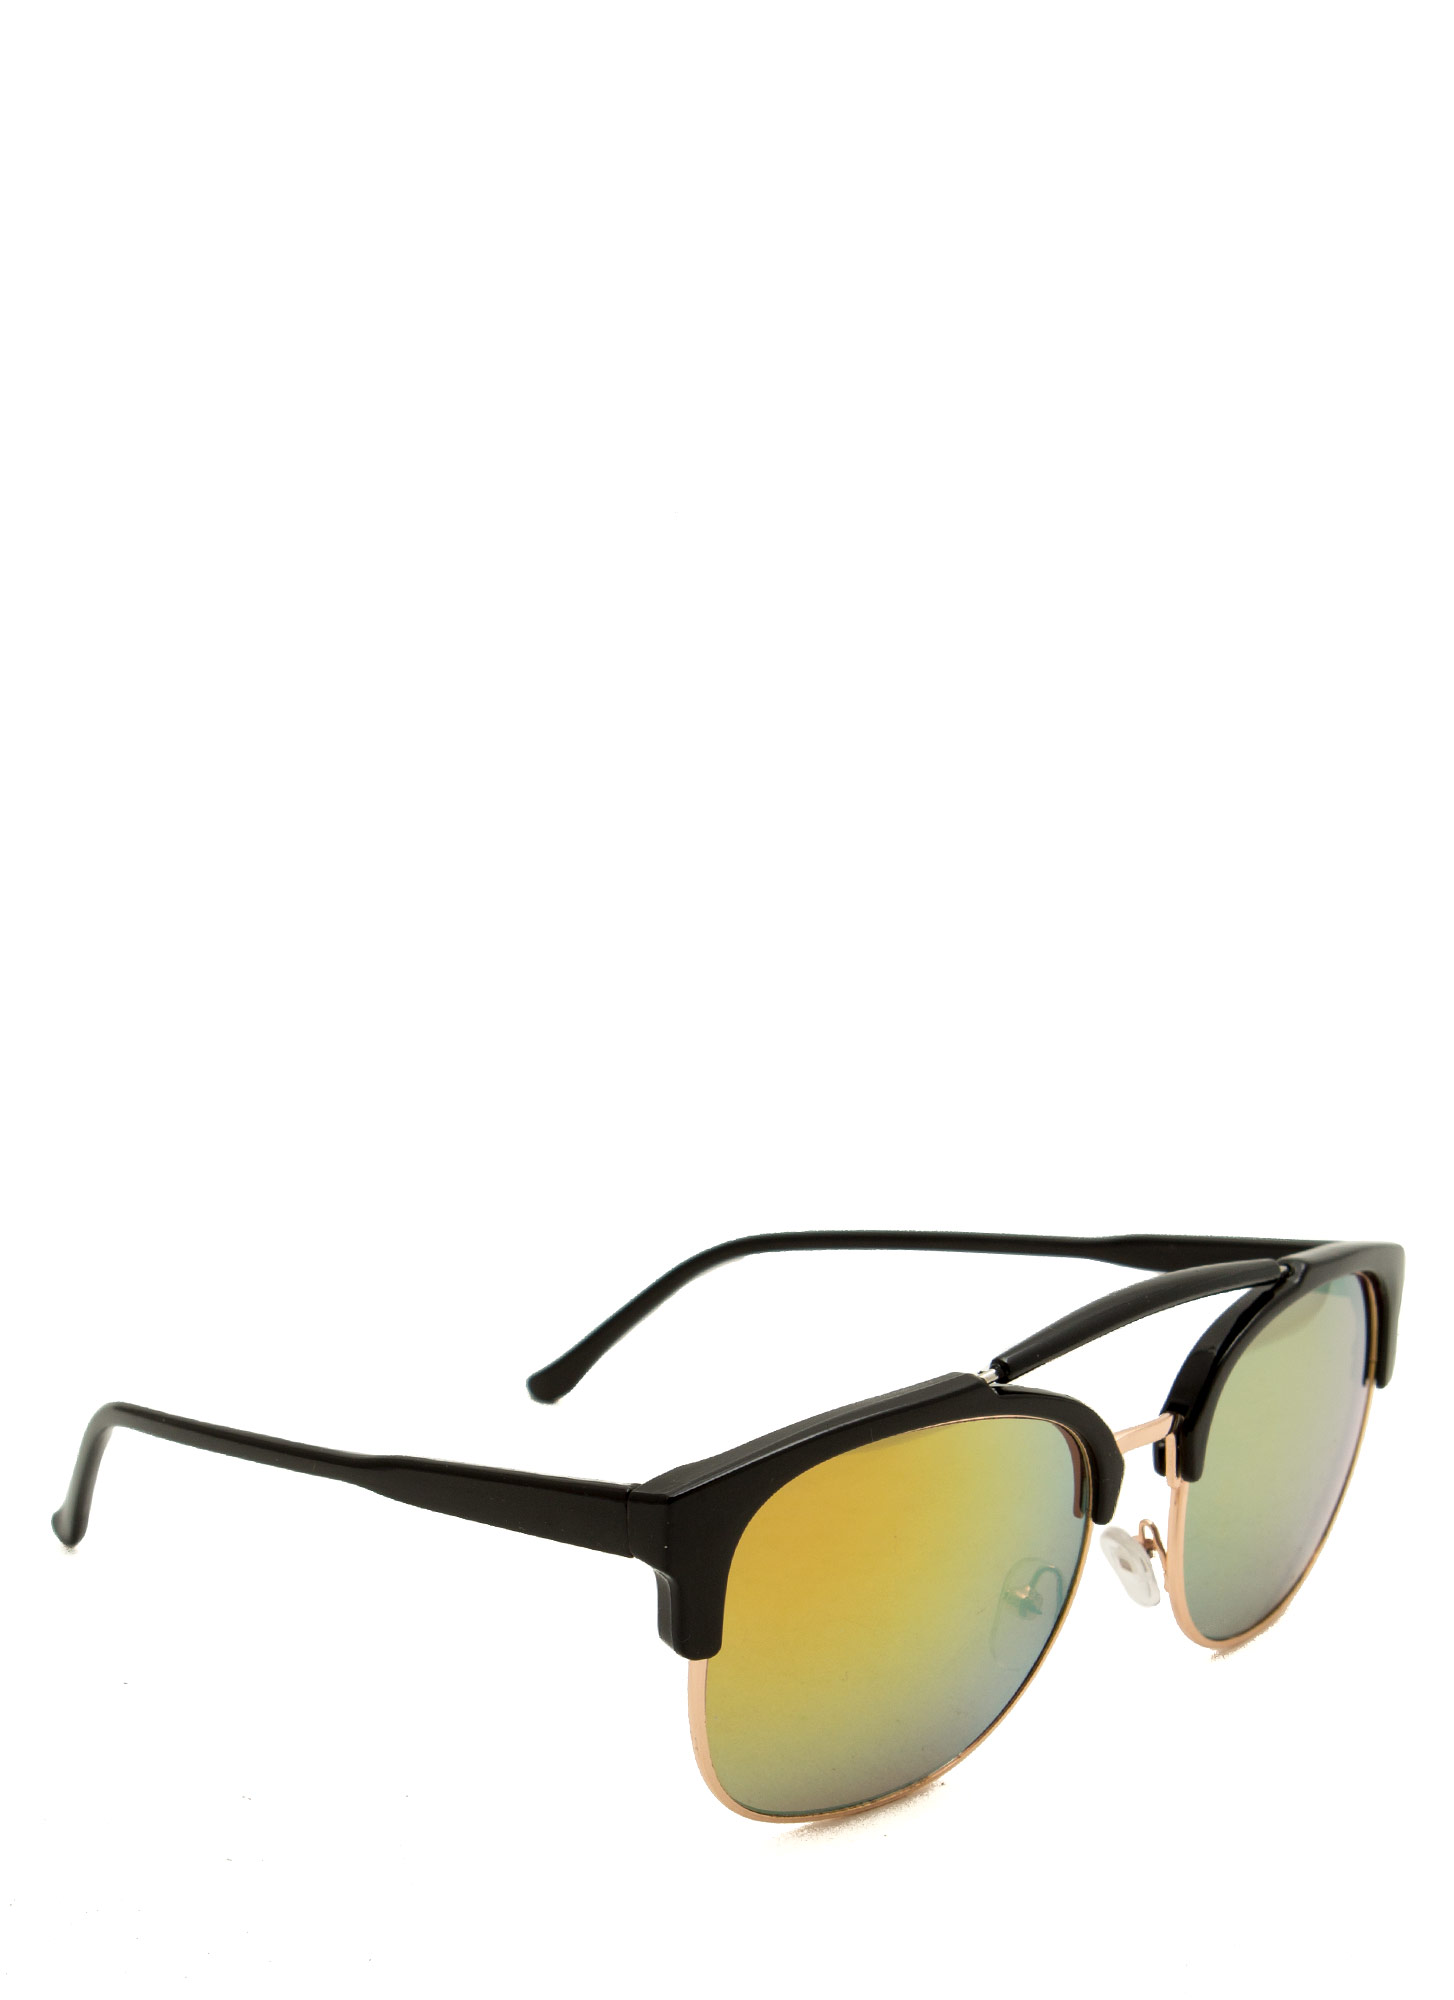 Top Bar Browline Sunglasses BLACKGOLD